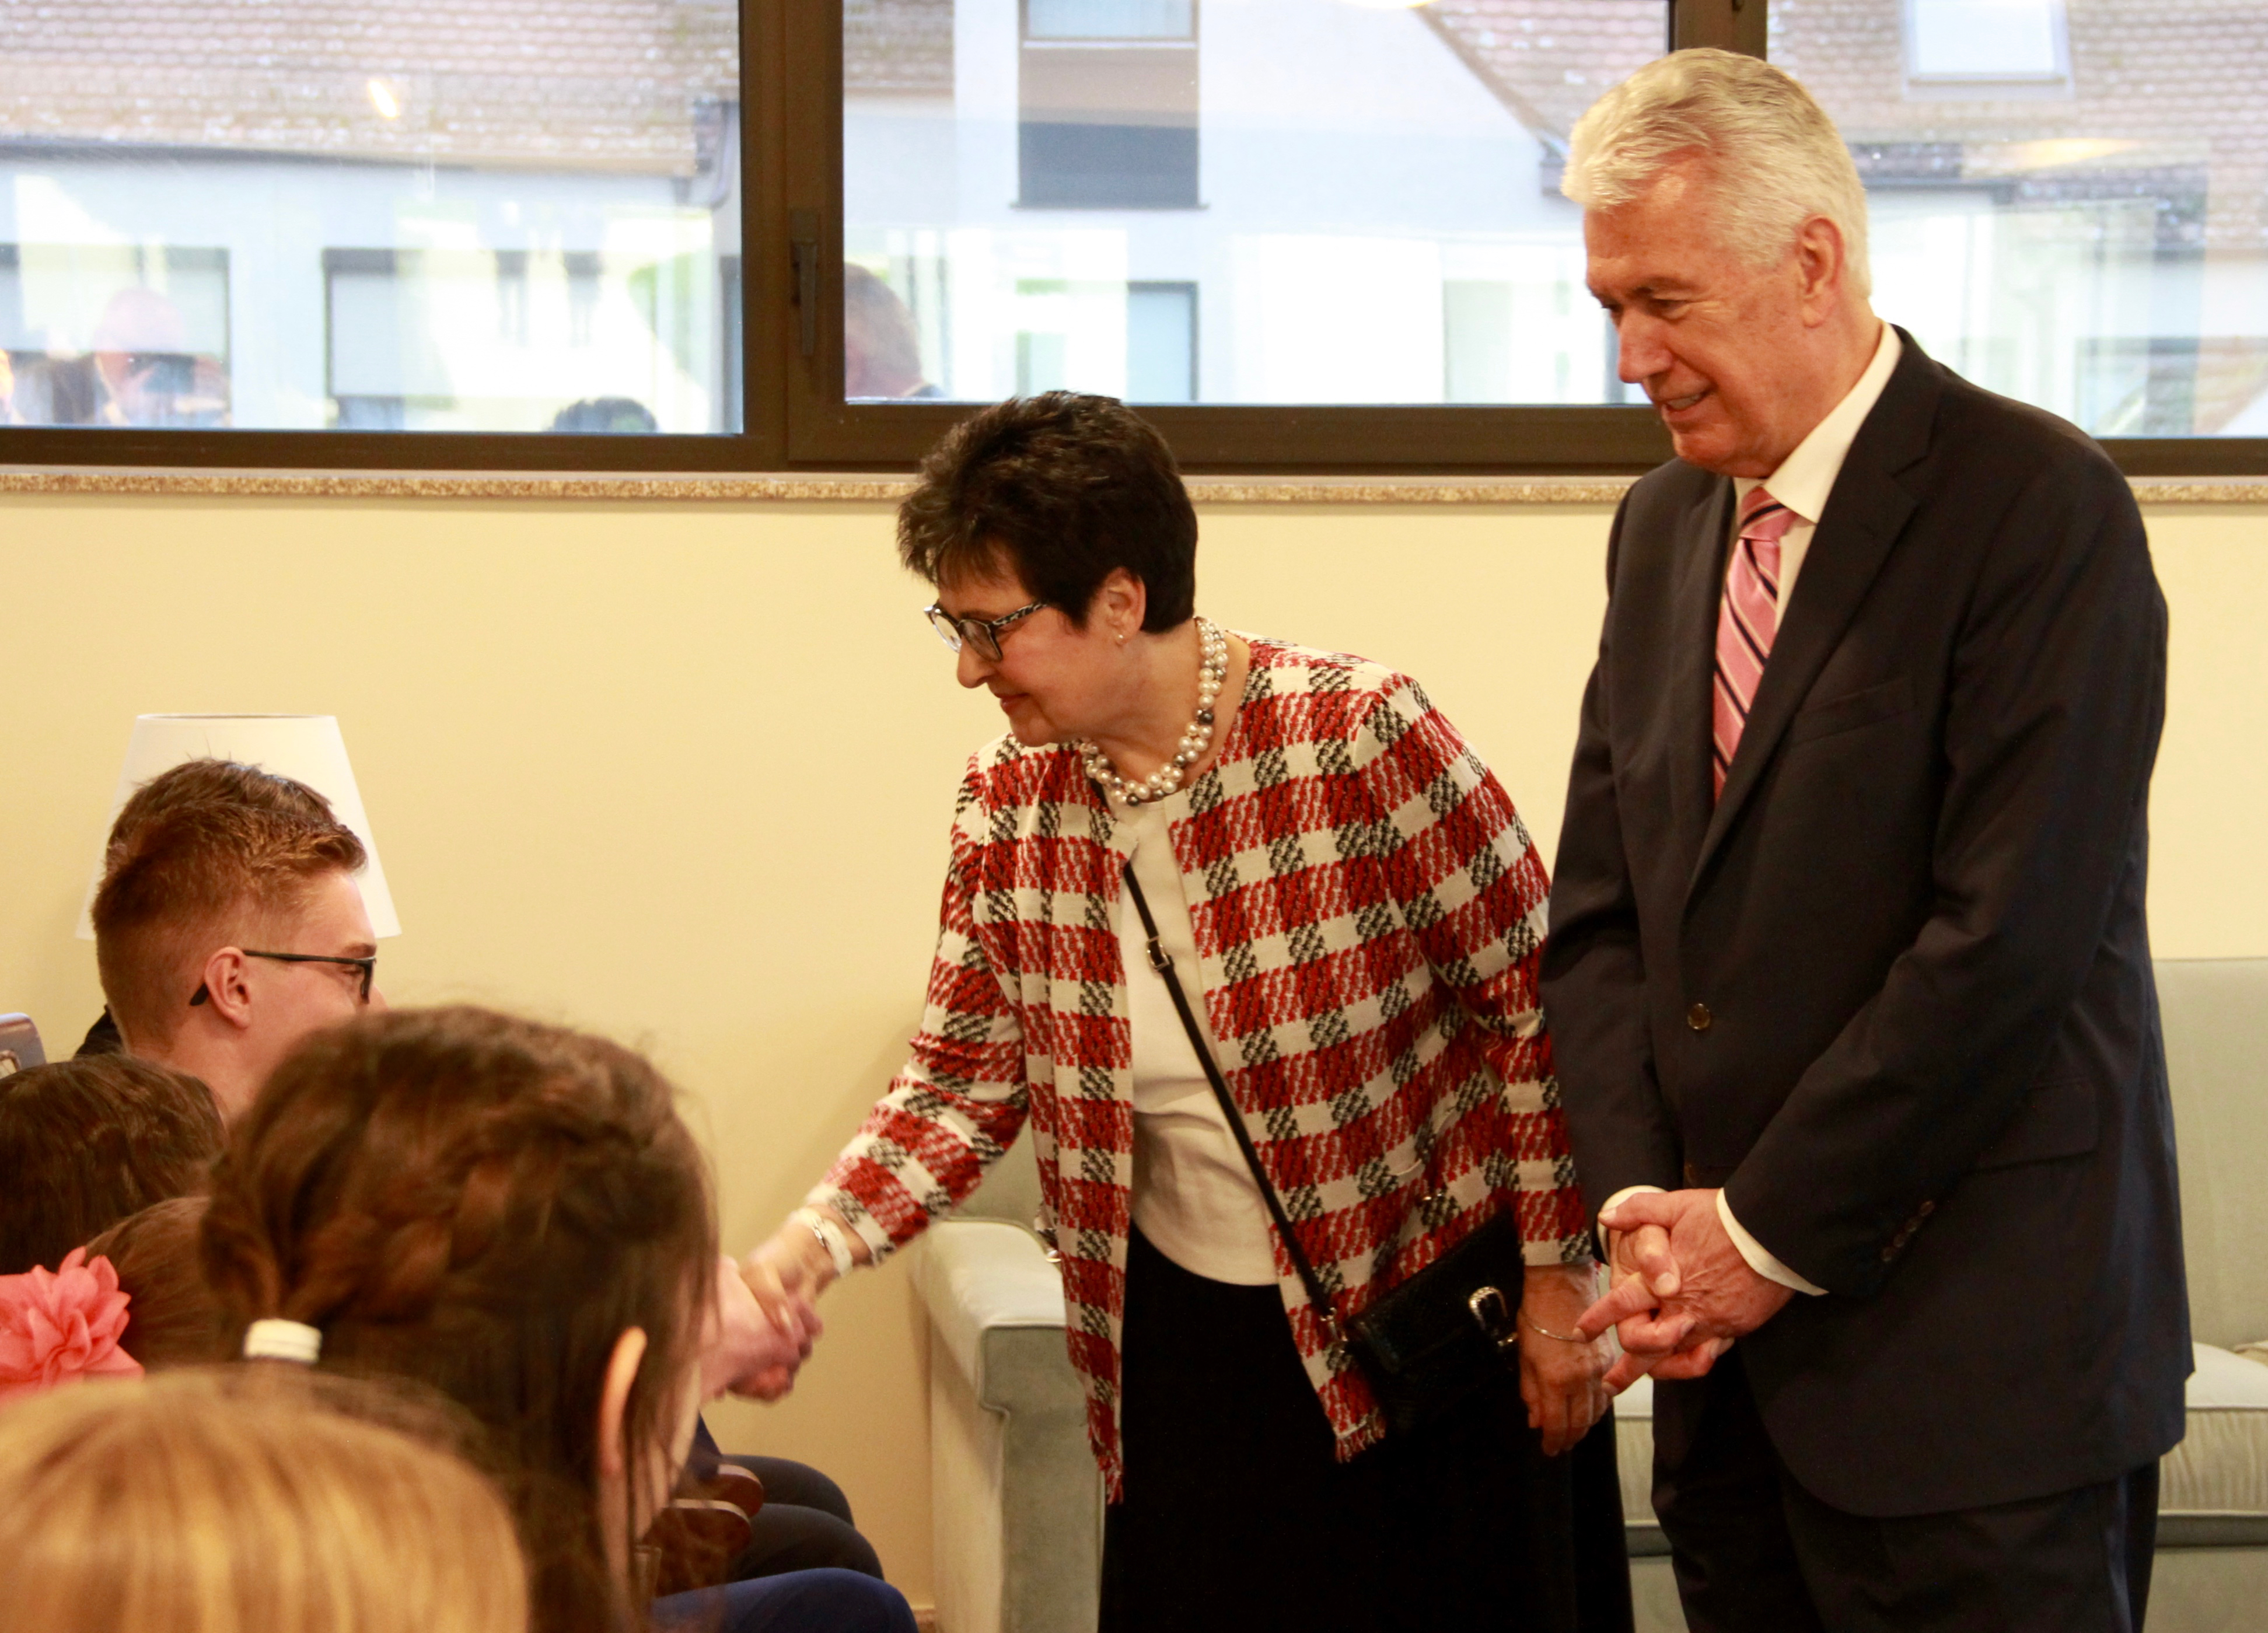 Elder Dieter F. Uchtdorf and Sister Harriet Uchtdorf greet youth prior to a meeting prior to a devotional Saturday, Oct. 19, 2019, in Friedrichsdorf, Germany.